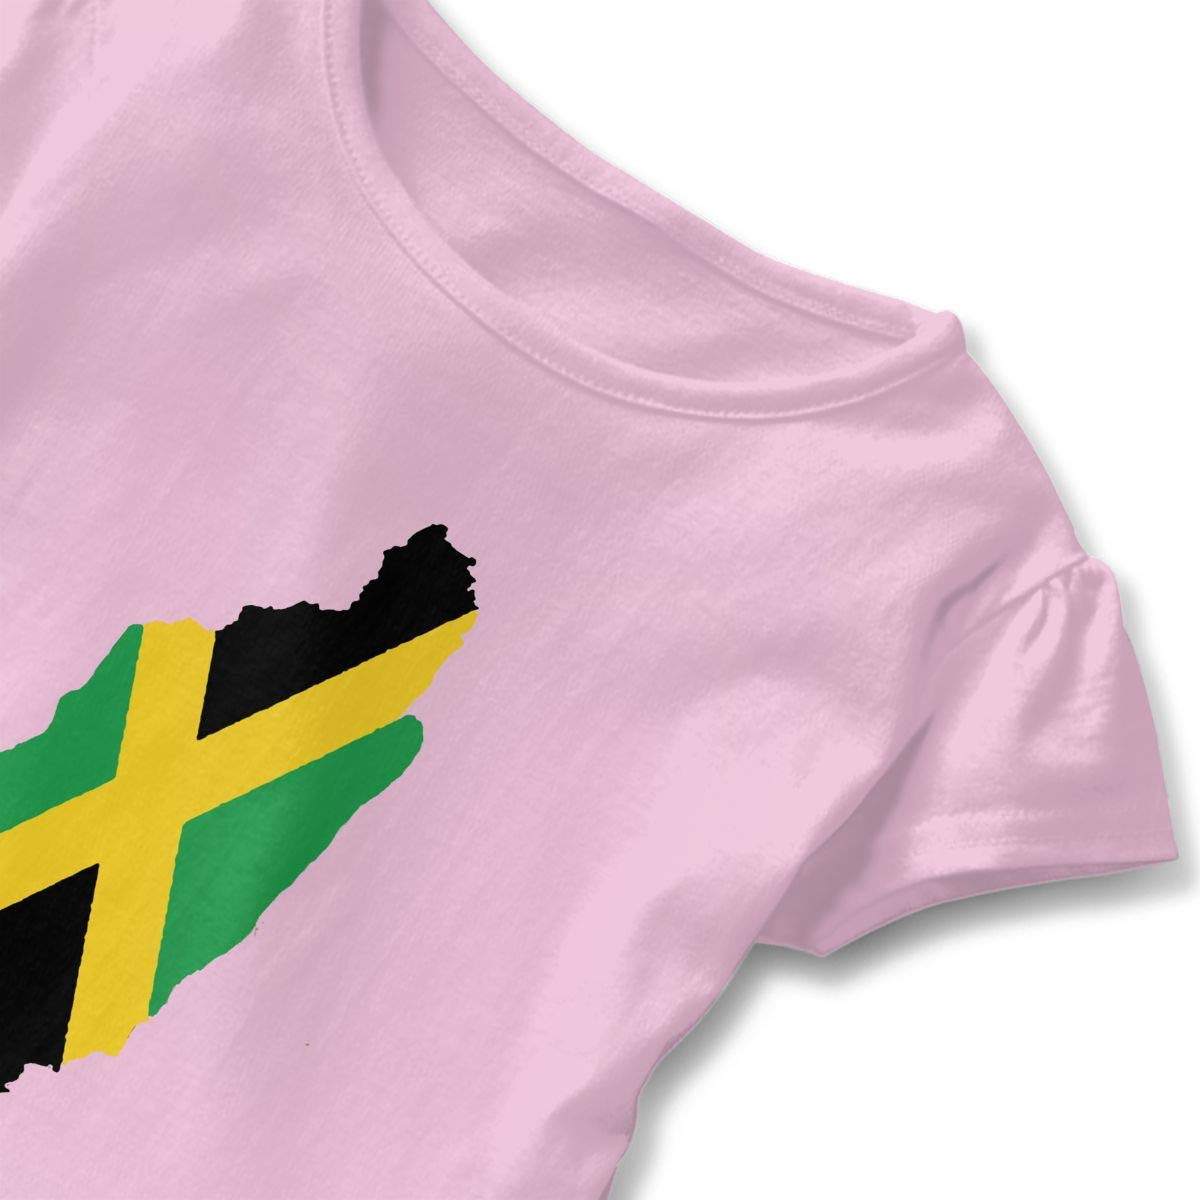 QUZtww Jamaican Flag Toddler Baby Girl Basic Printed Ruffle Short Sleeve Cotton T Shirts Tops Tee Clothes Pink